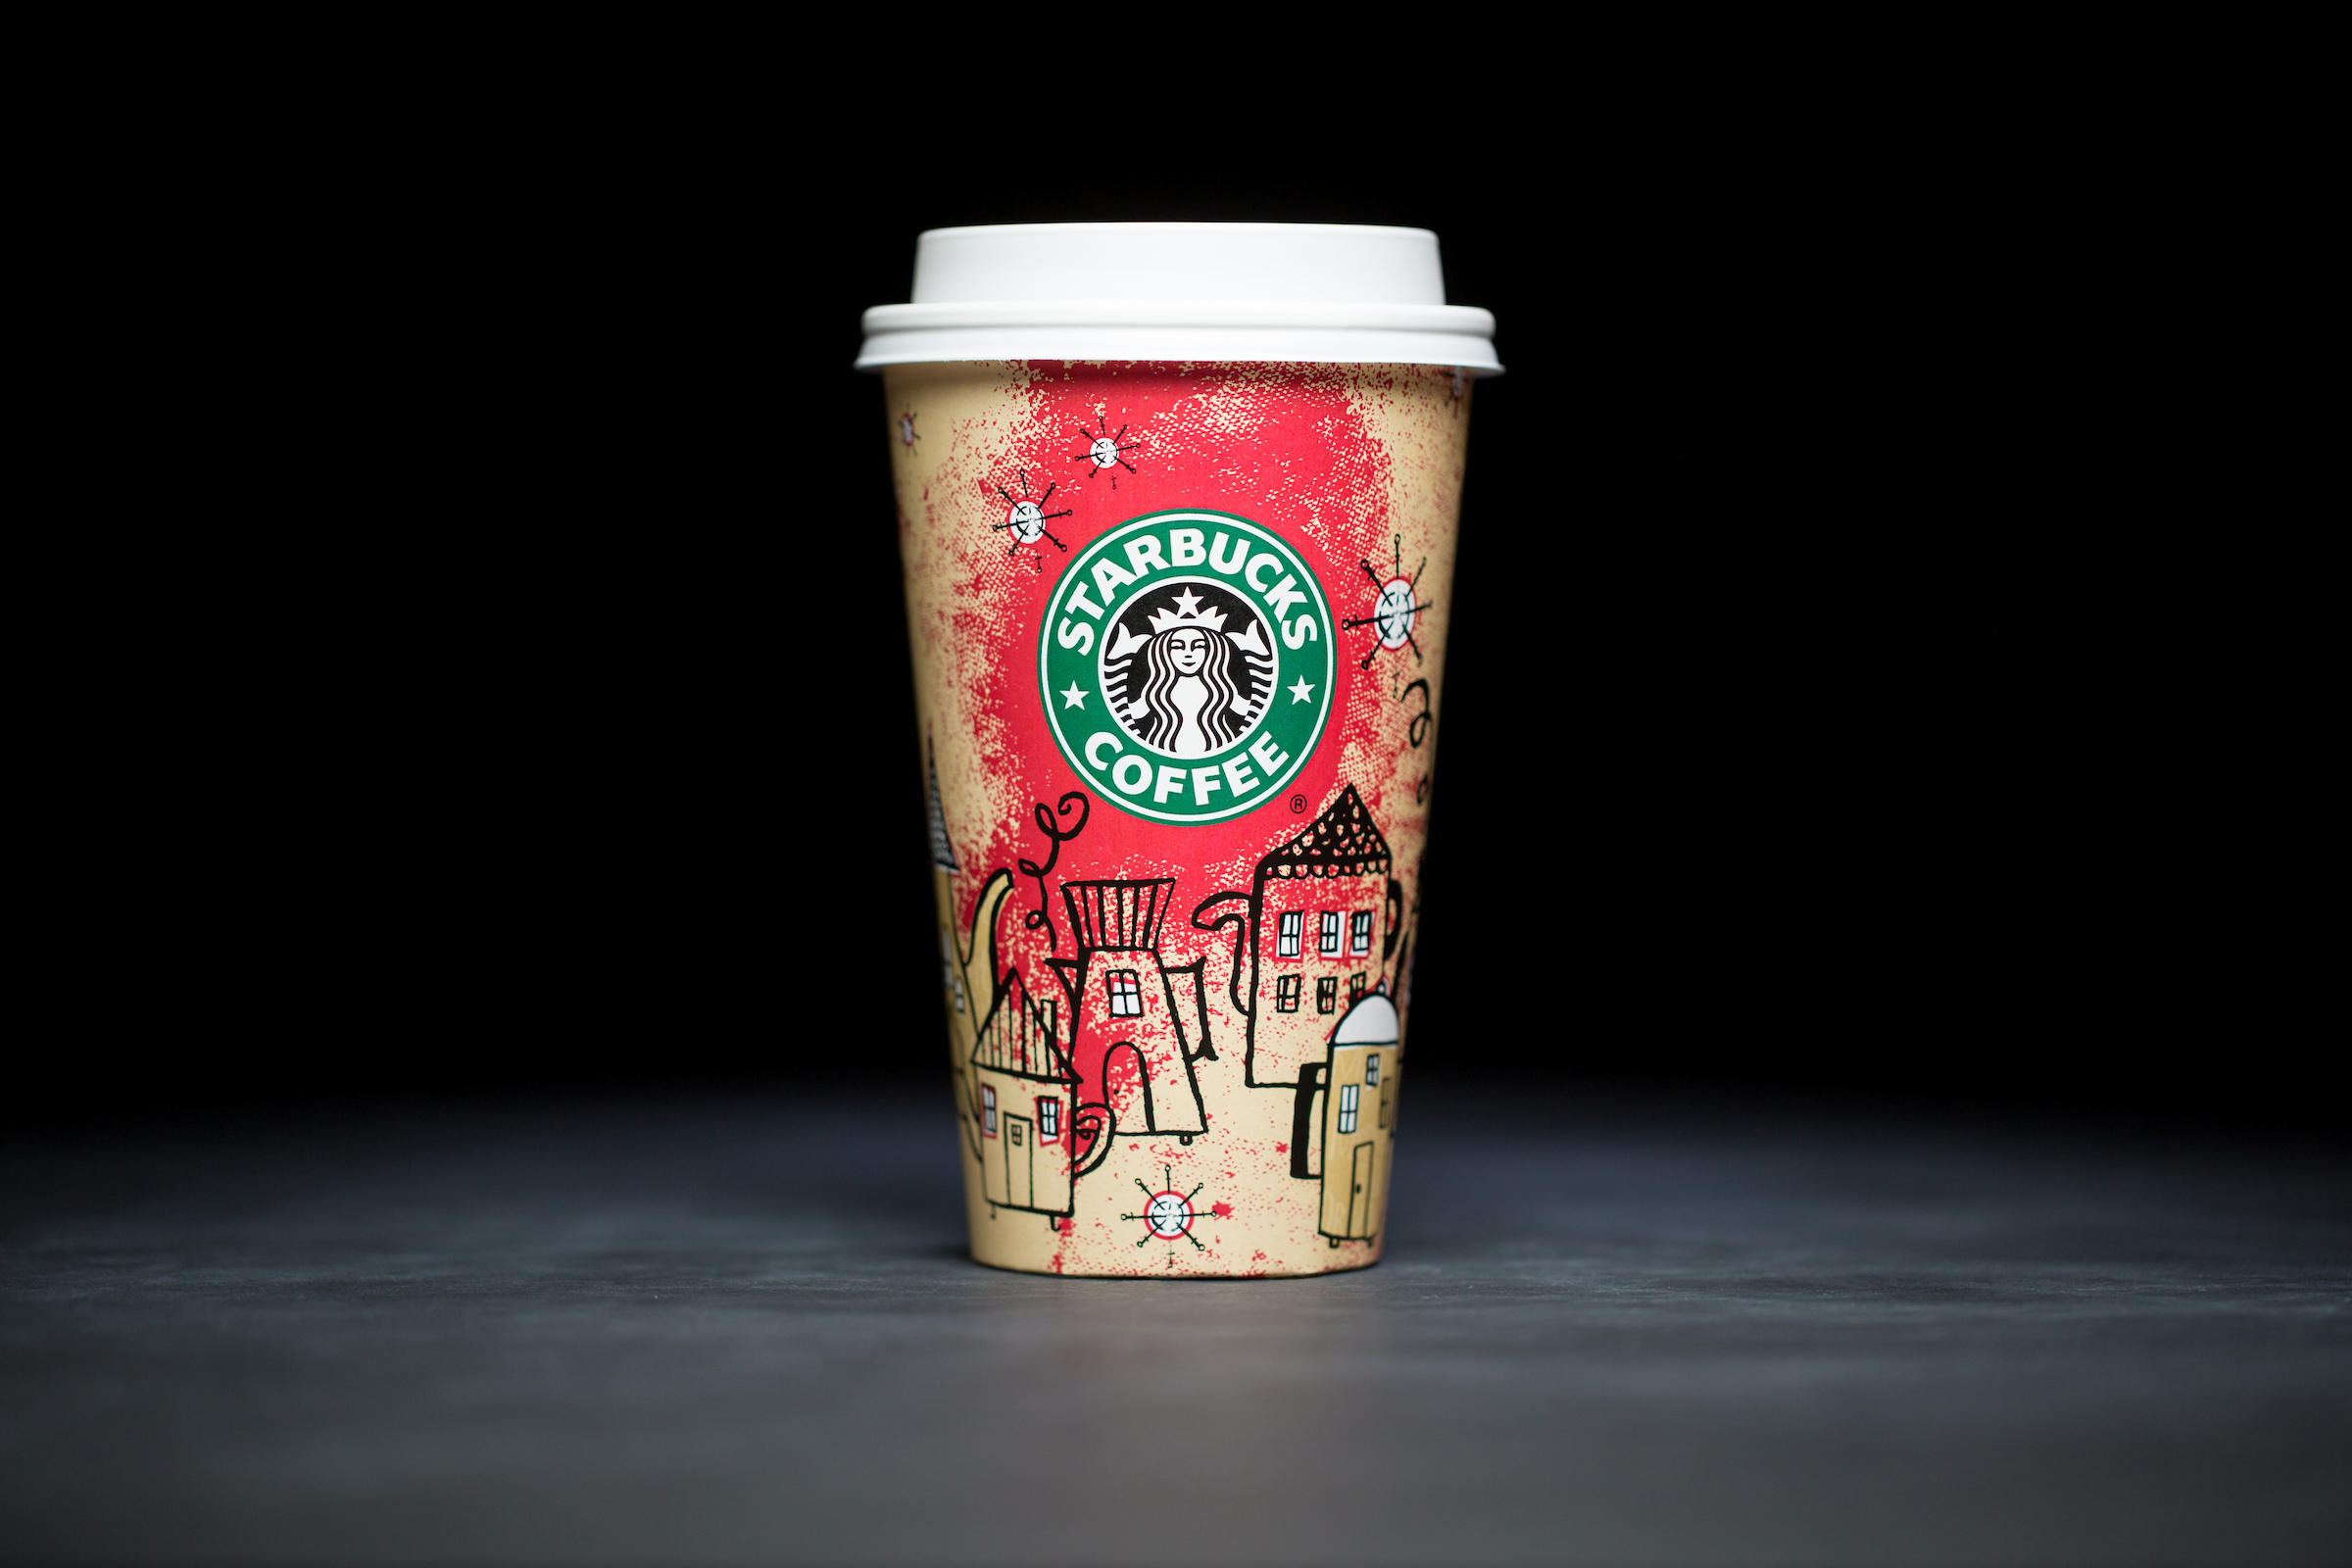 2000: For 20 years, Starbucks have released a range of holiday cup designs, most of them based around their world famous red cup. It's not easy to find the very first Starbucks holiday cups, which made their debut in stores in 1997. Few were saved, and electronic design files were lost in an earthquake in 2001. Even an Internet search is unyielding, with the cups having made their arrival long before the first selfie. But, we have them here! Click on for a photos of all 20 holidays cup designs. (Image: Joshua Trujillo/Cover Images)